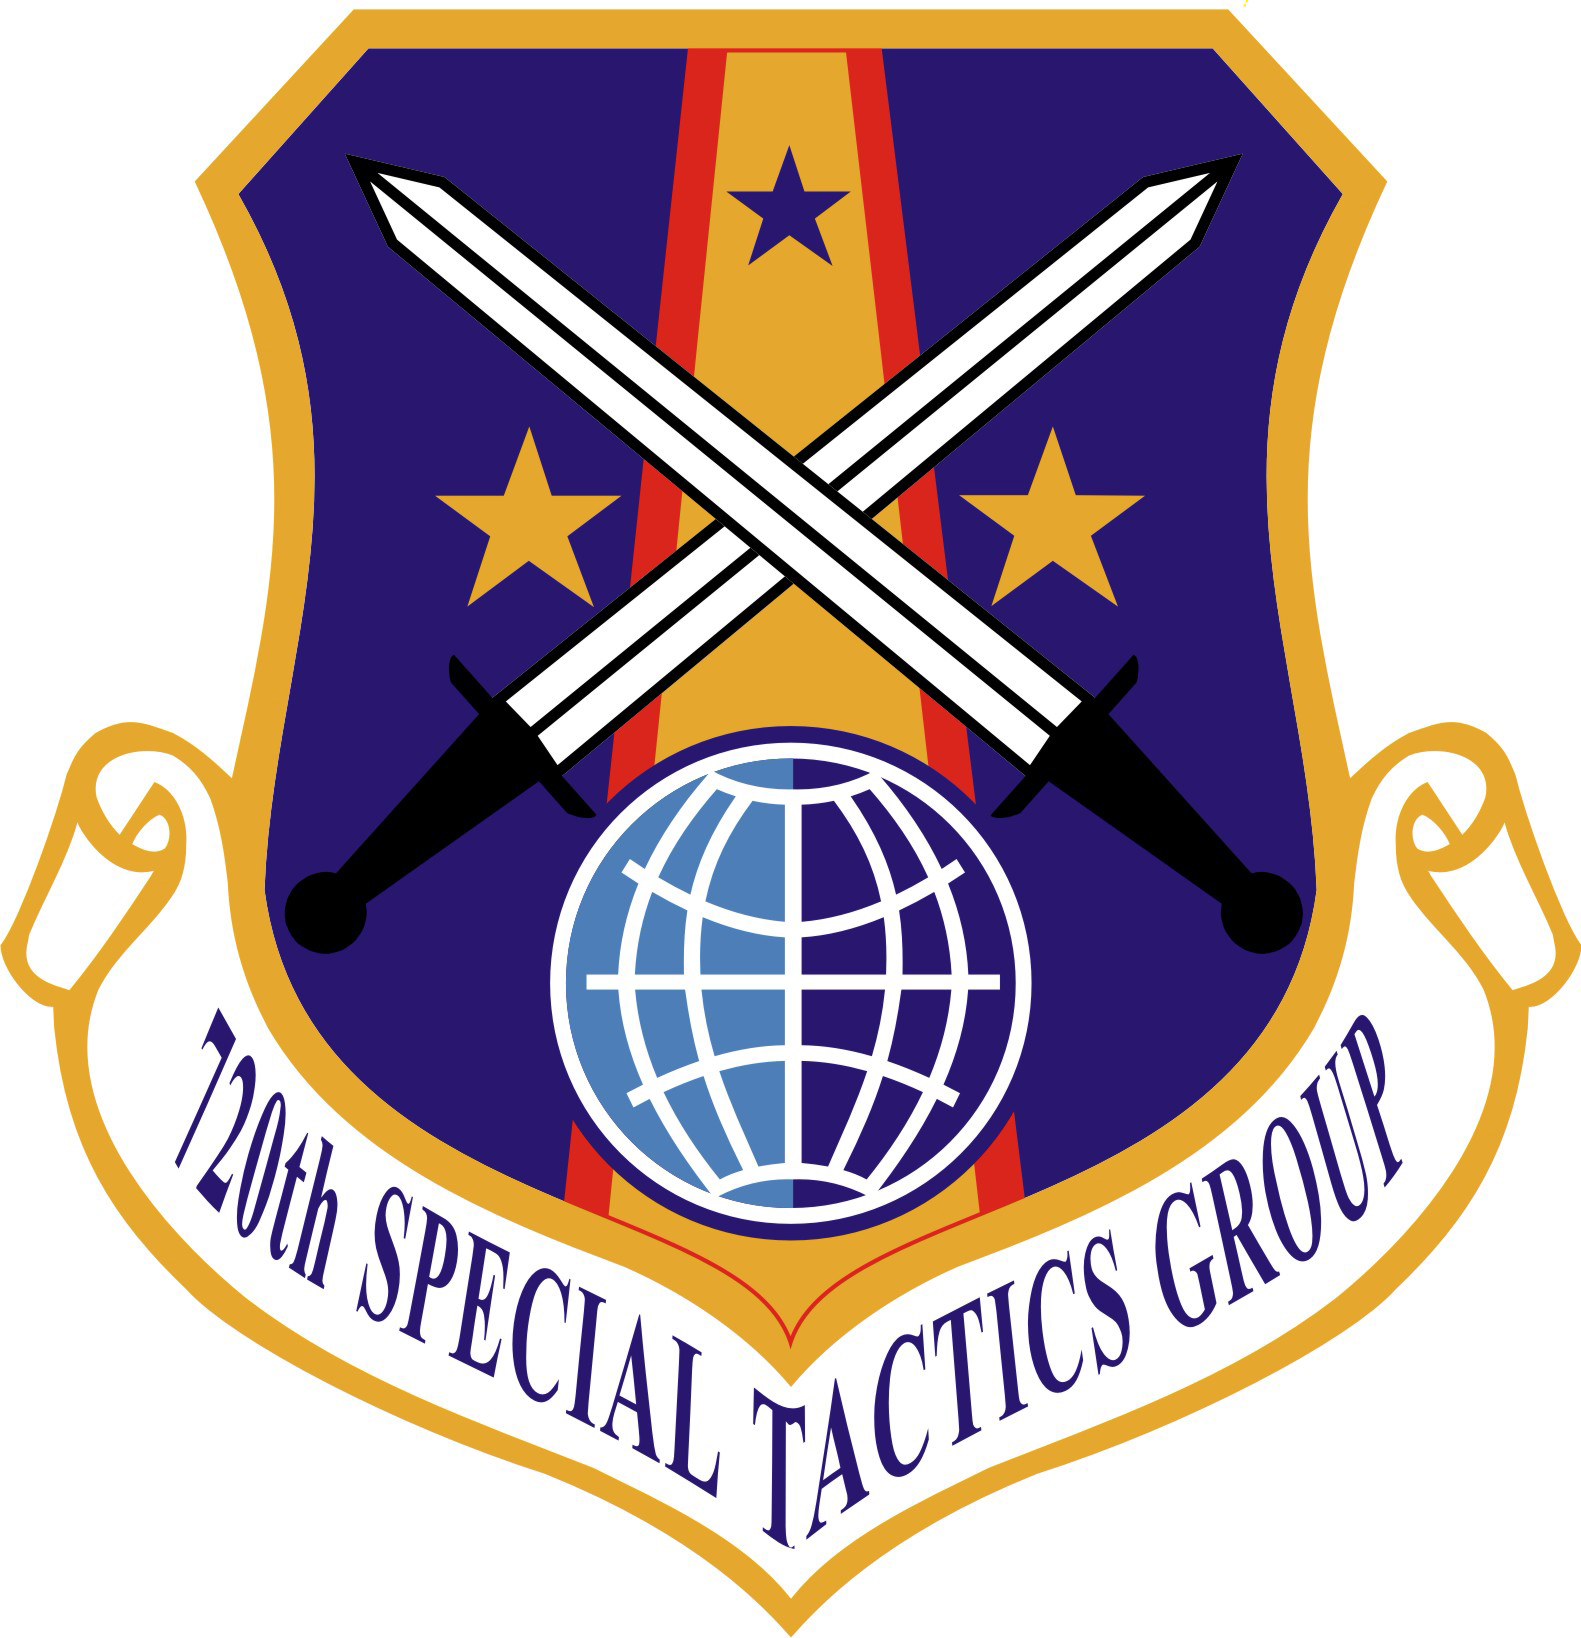 724th Special Tactics Group